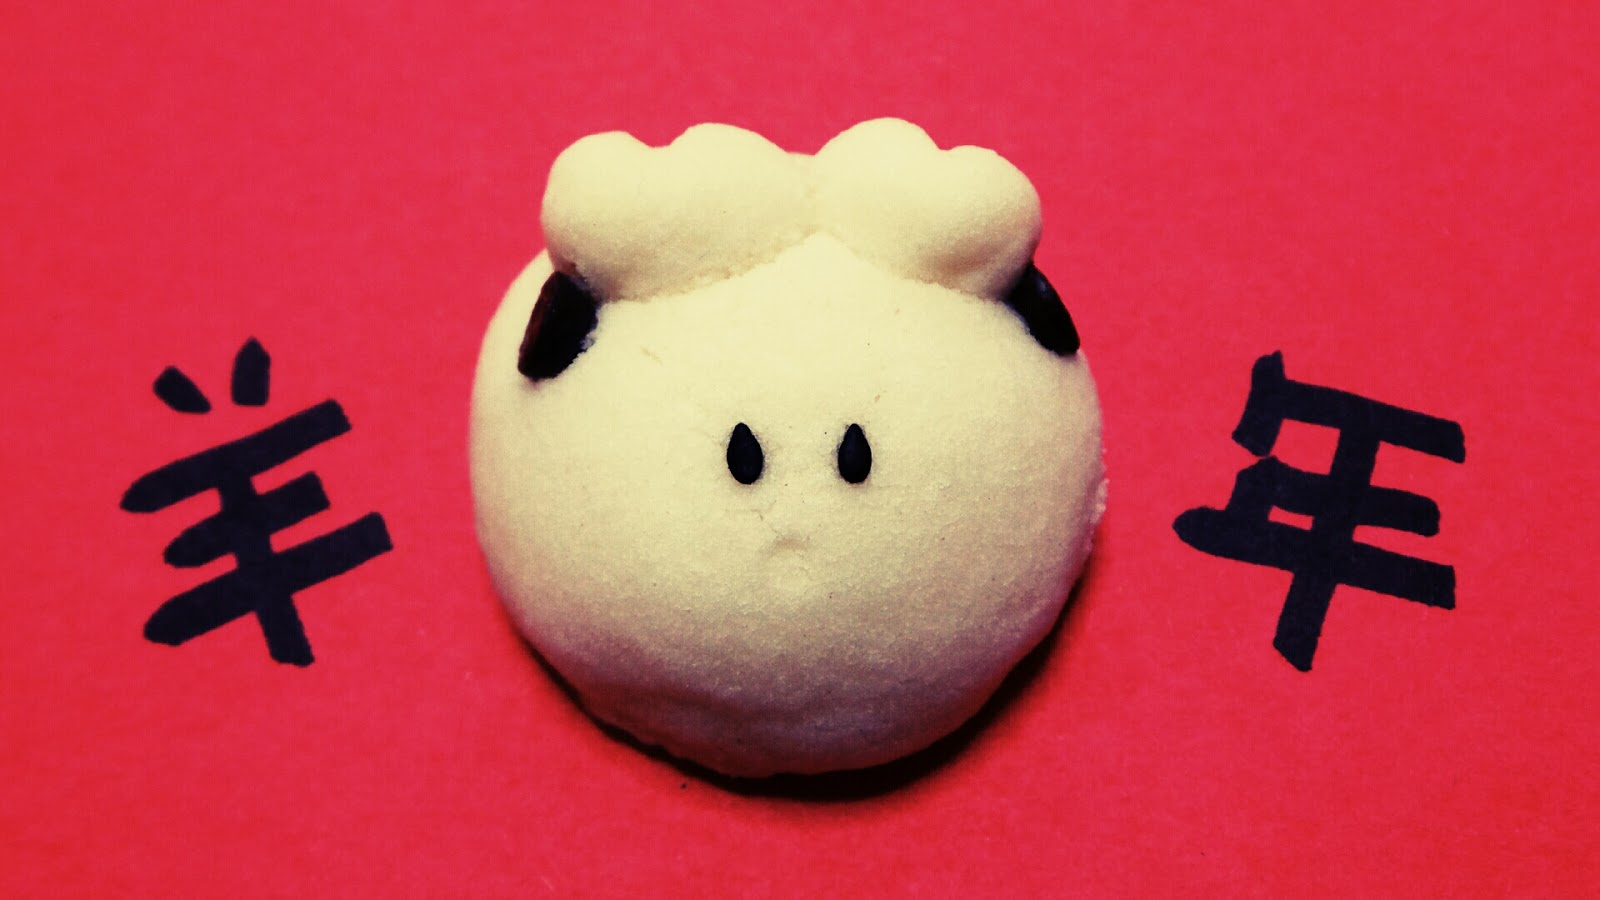 Sheep goat melt in your mouth chinese new year cookies. CNY 羊状酥饼 新年饼干